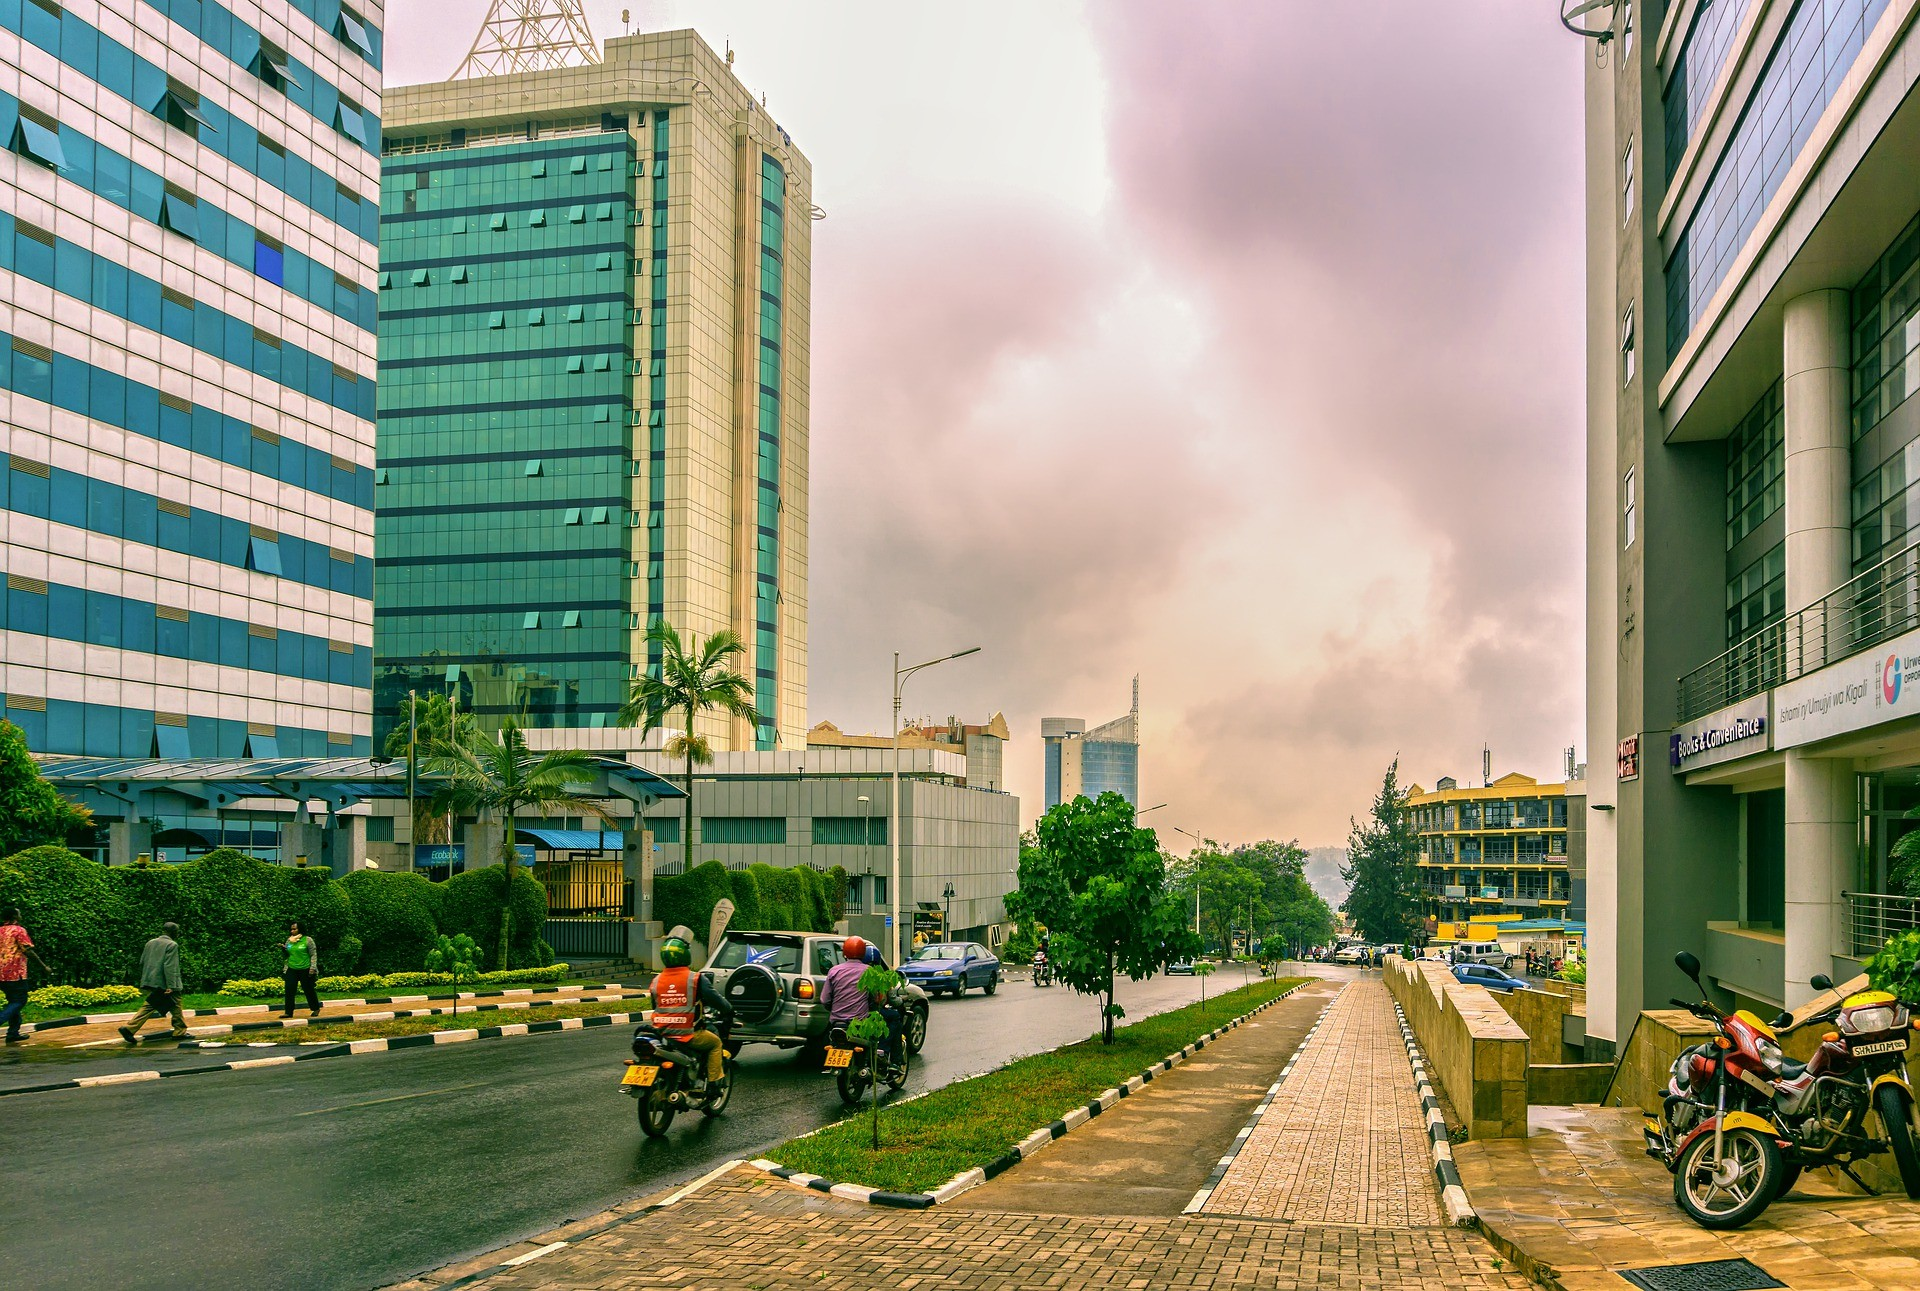 african city with fewer traffic and people